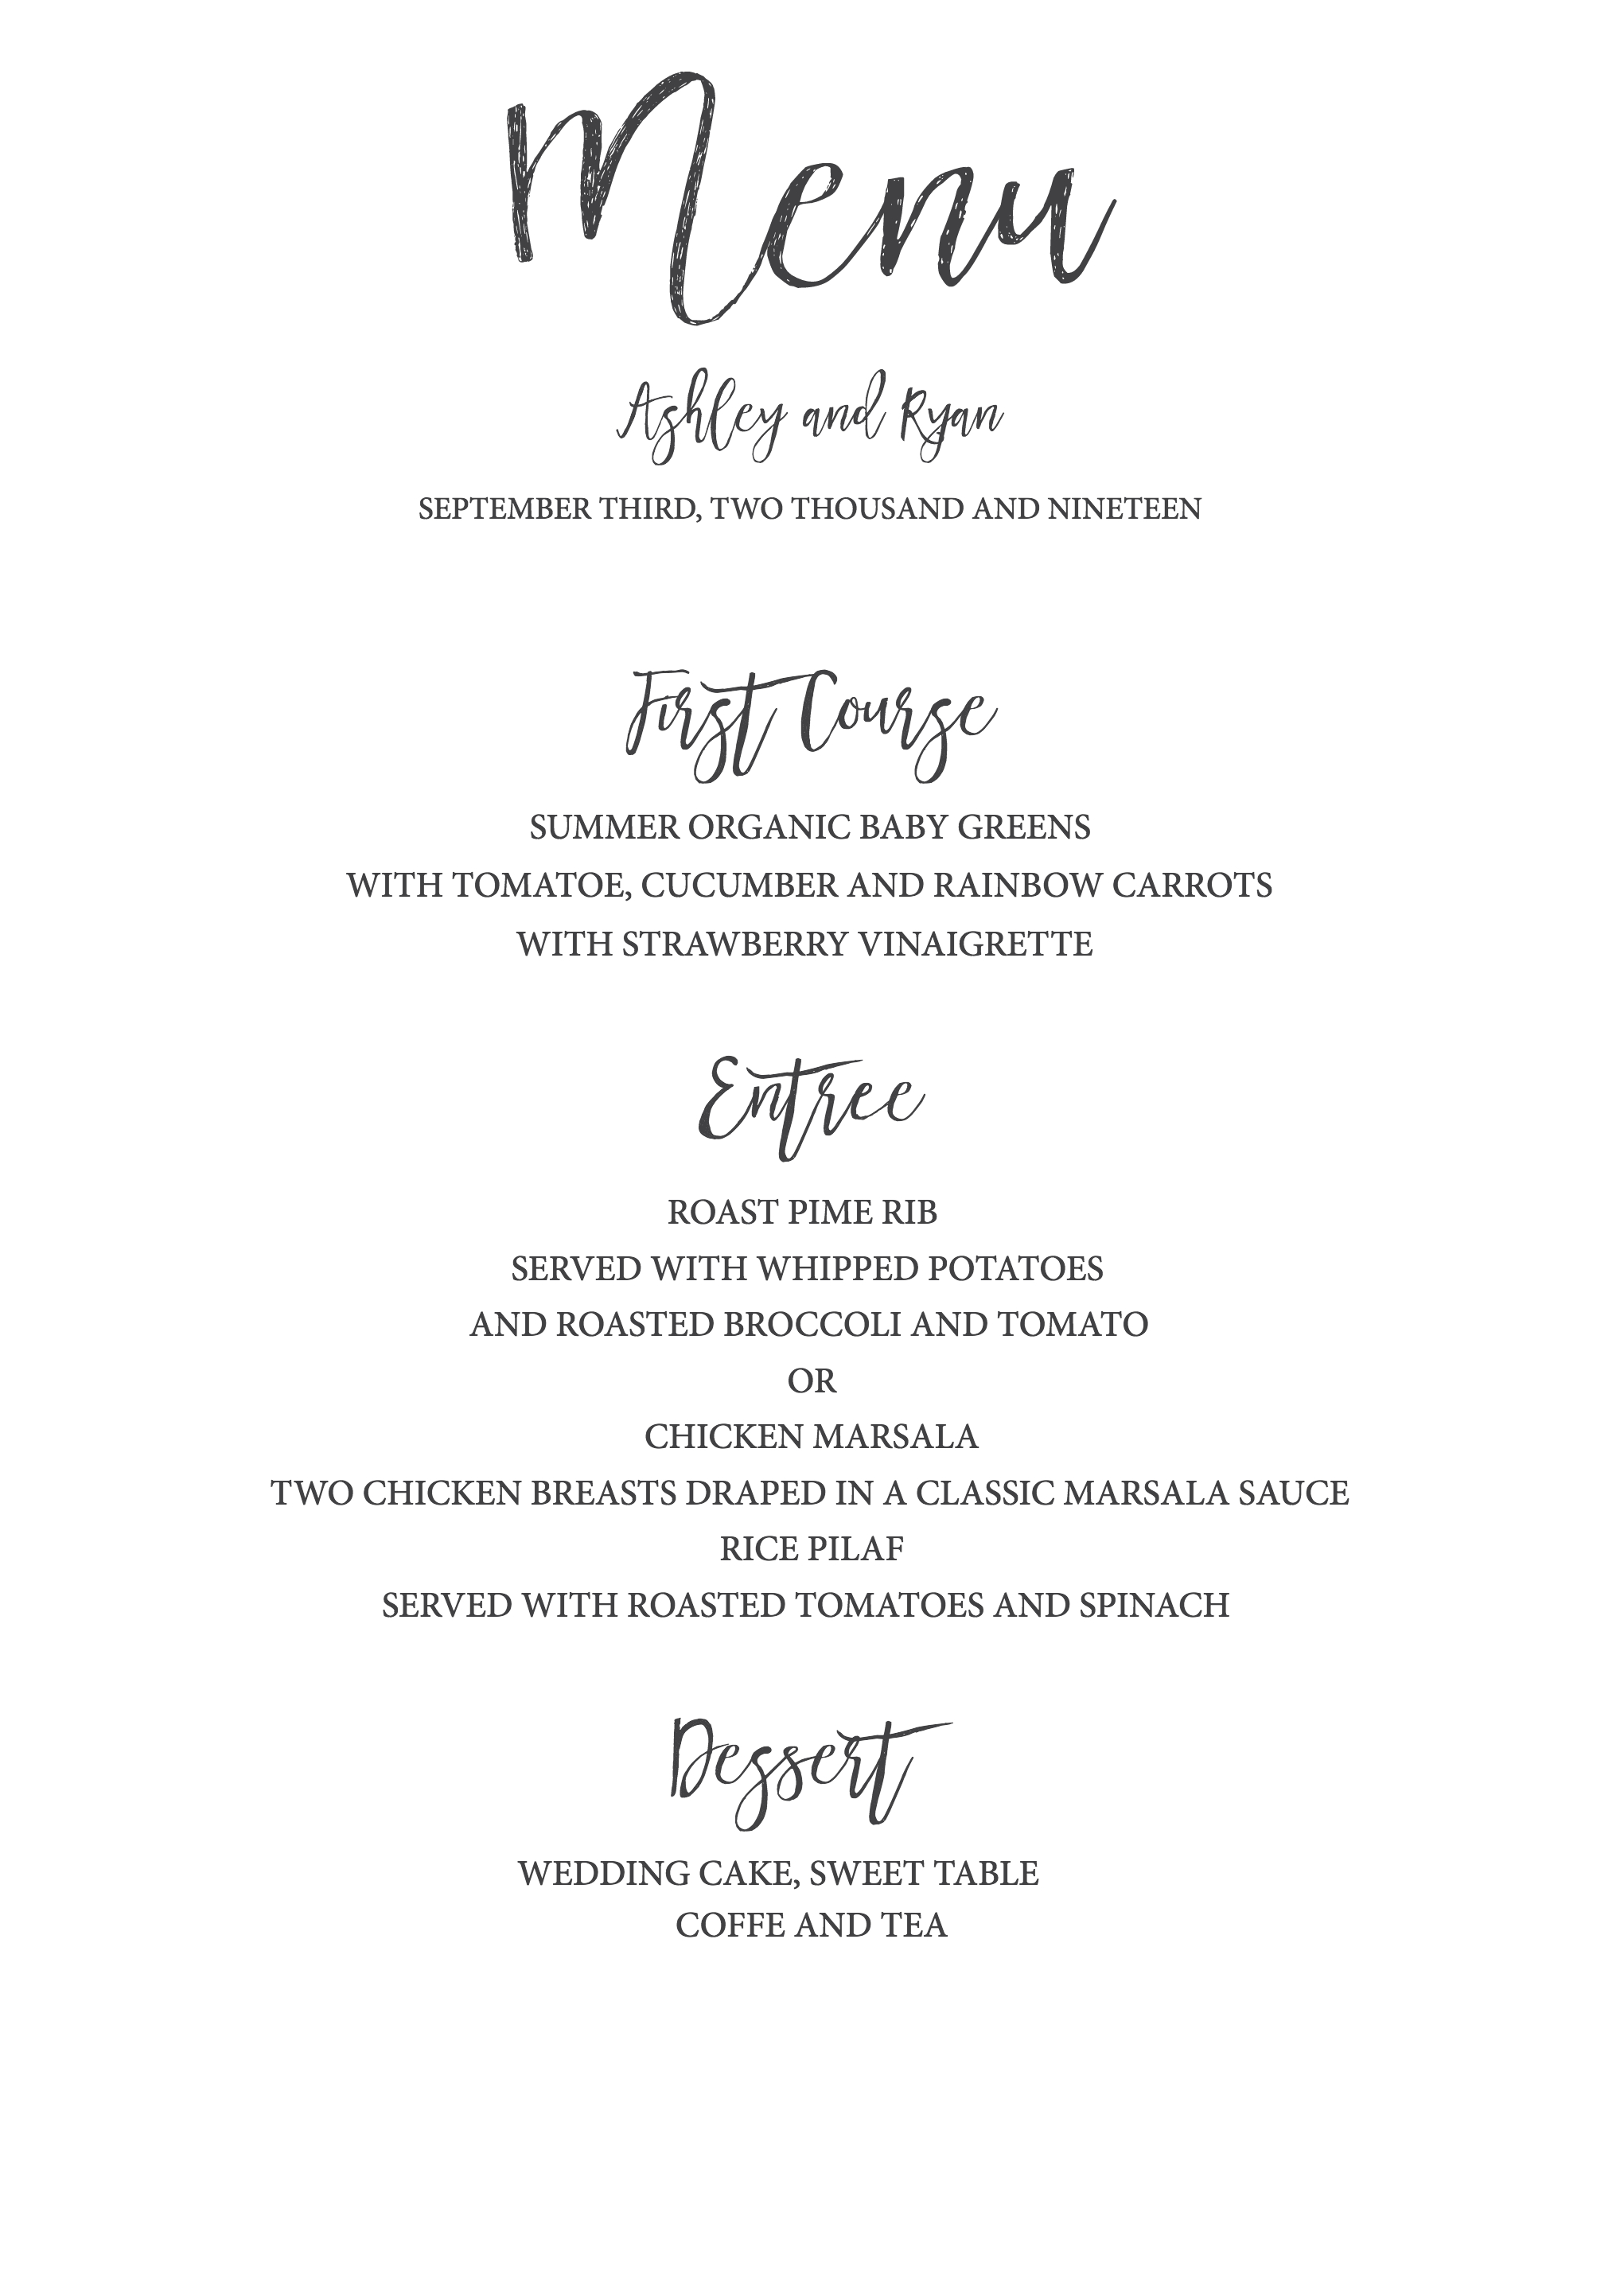 Timeless And Simple Wedding Invitation  Freebies  Free Printables Regarding Free Printable Menu Template